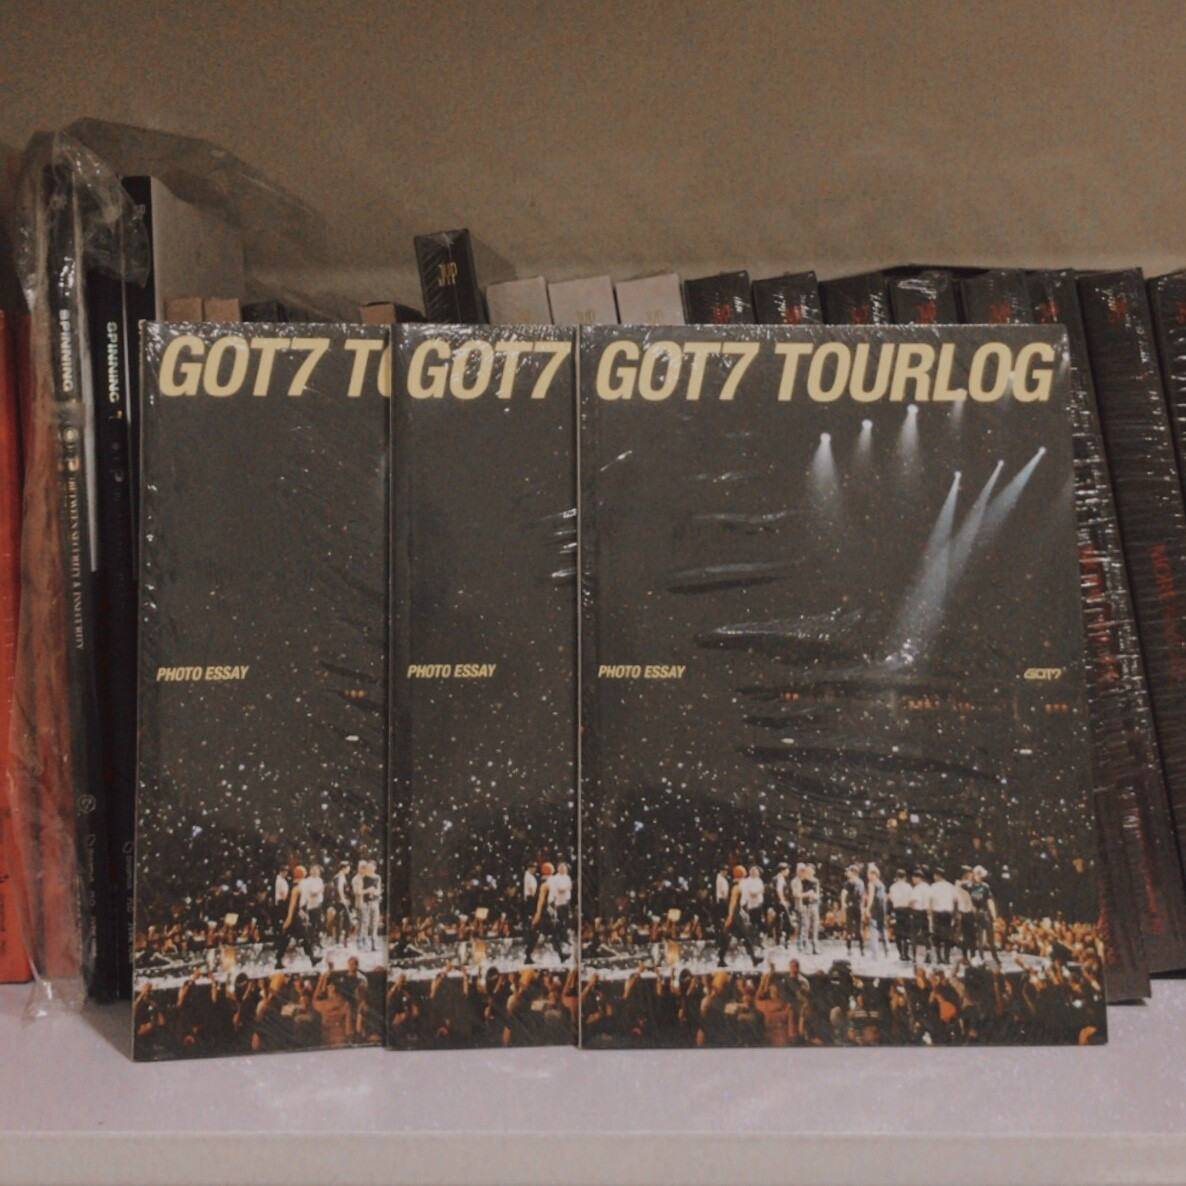 GOT7 DYE TOURLOG ESSAY